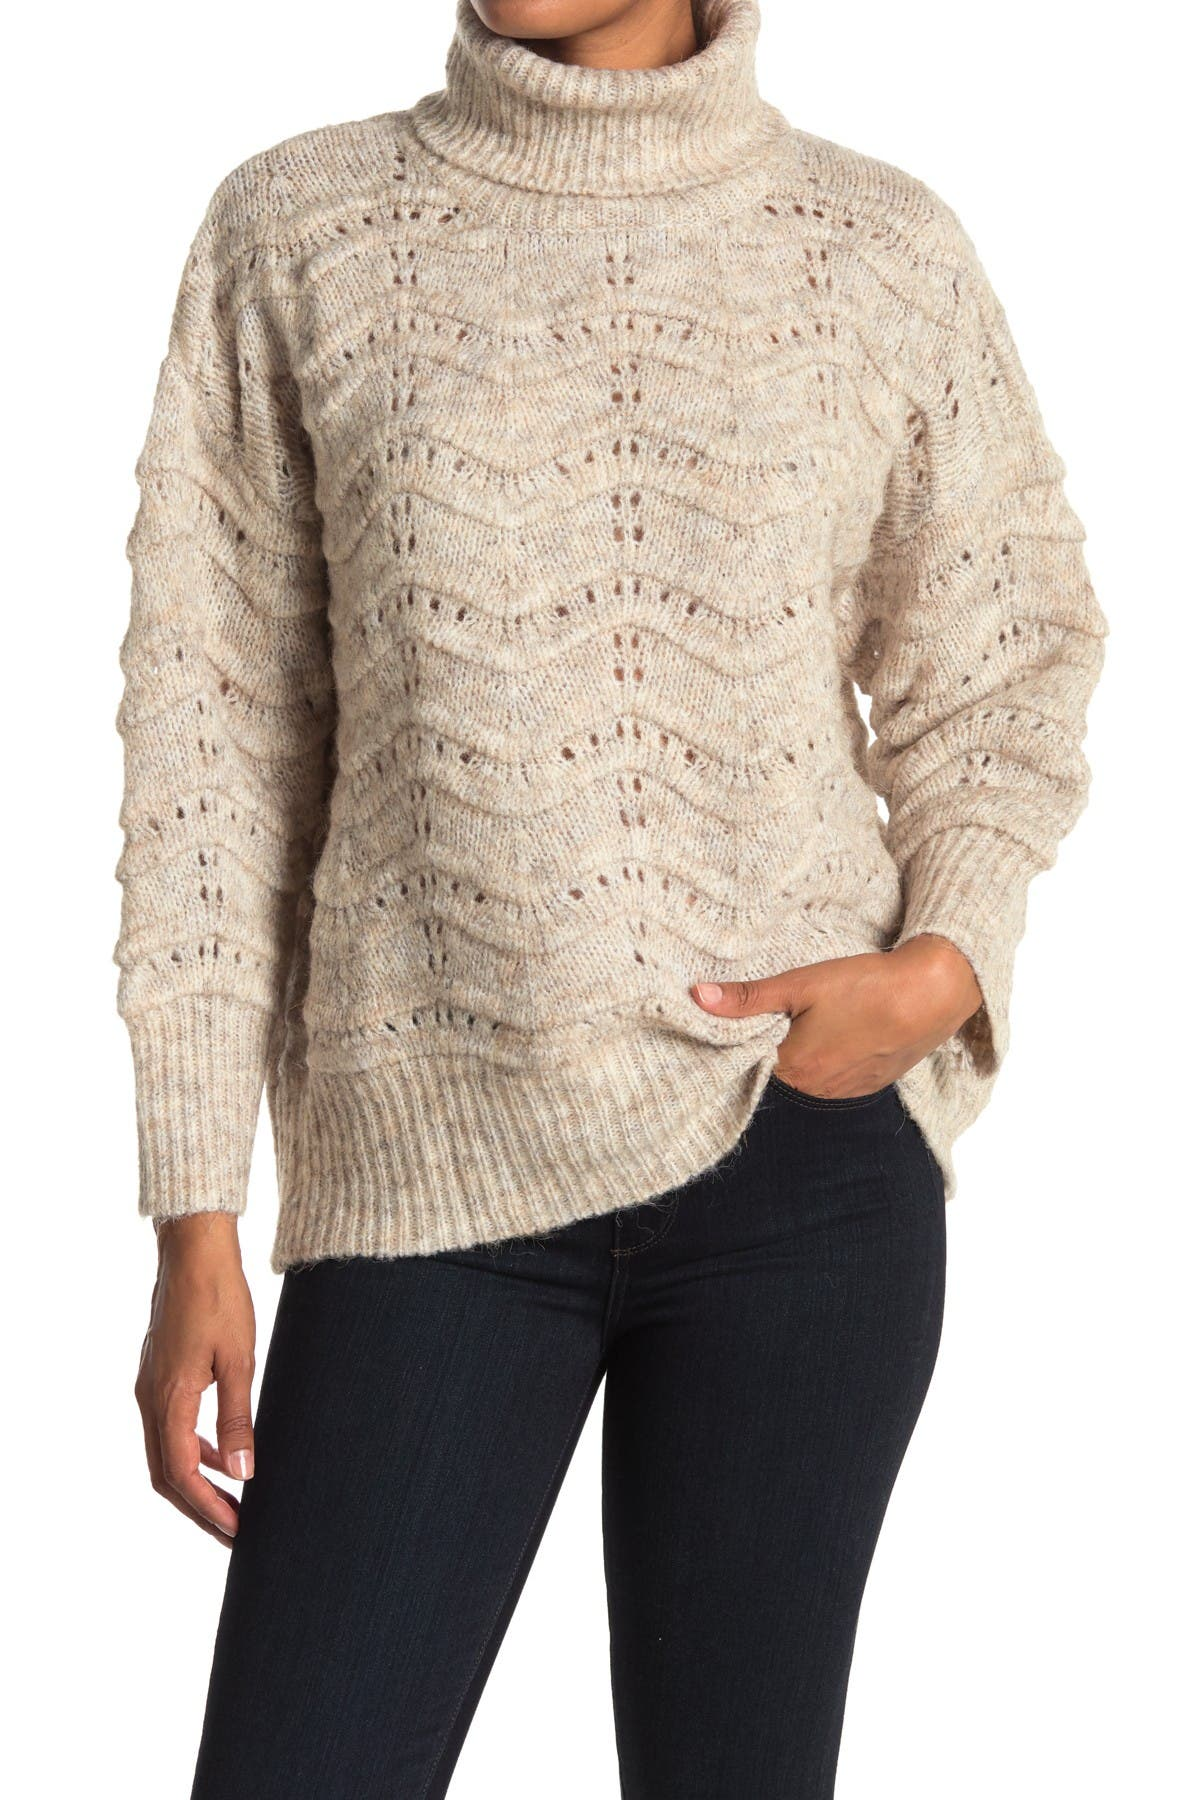 Image of FRNCH Cable Knit Turtleneck Sweater